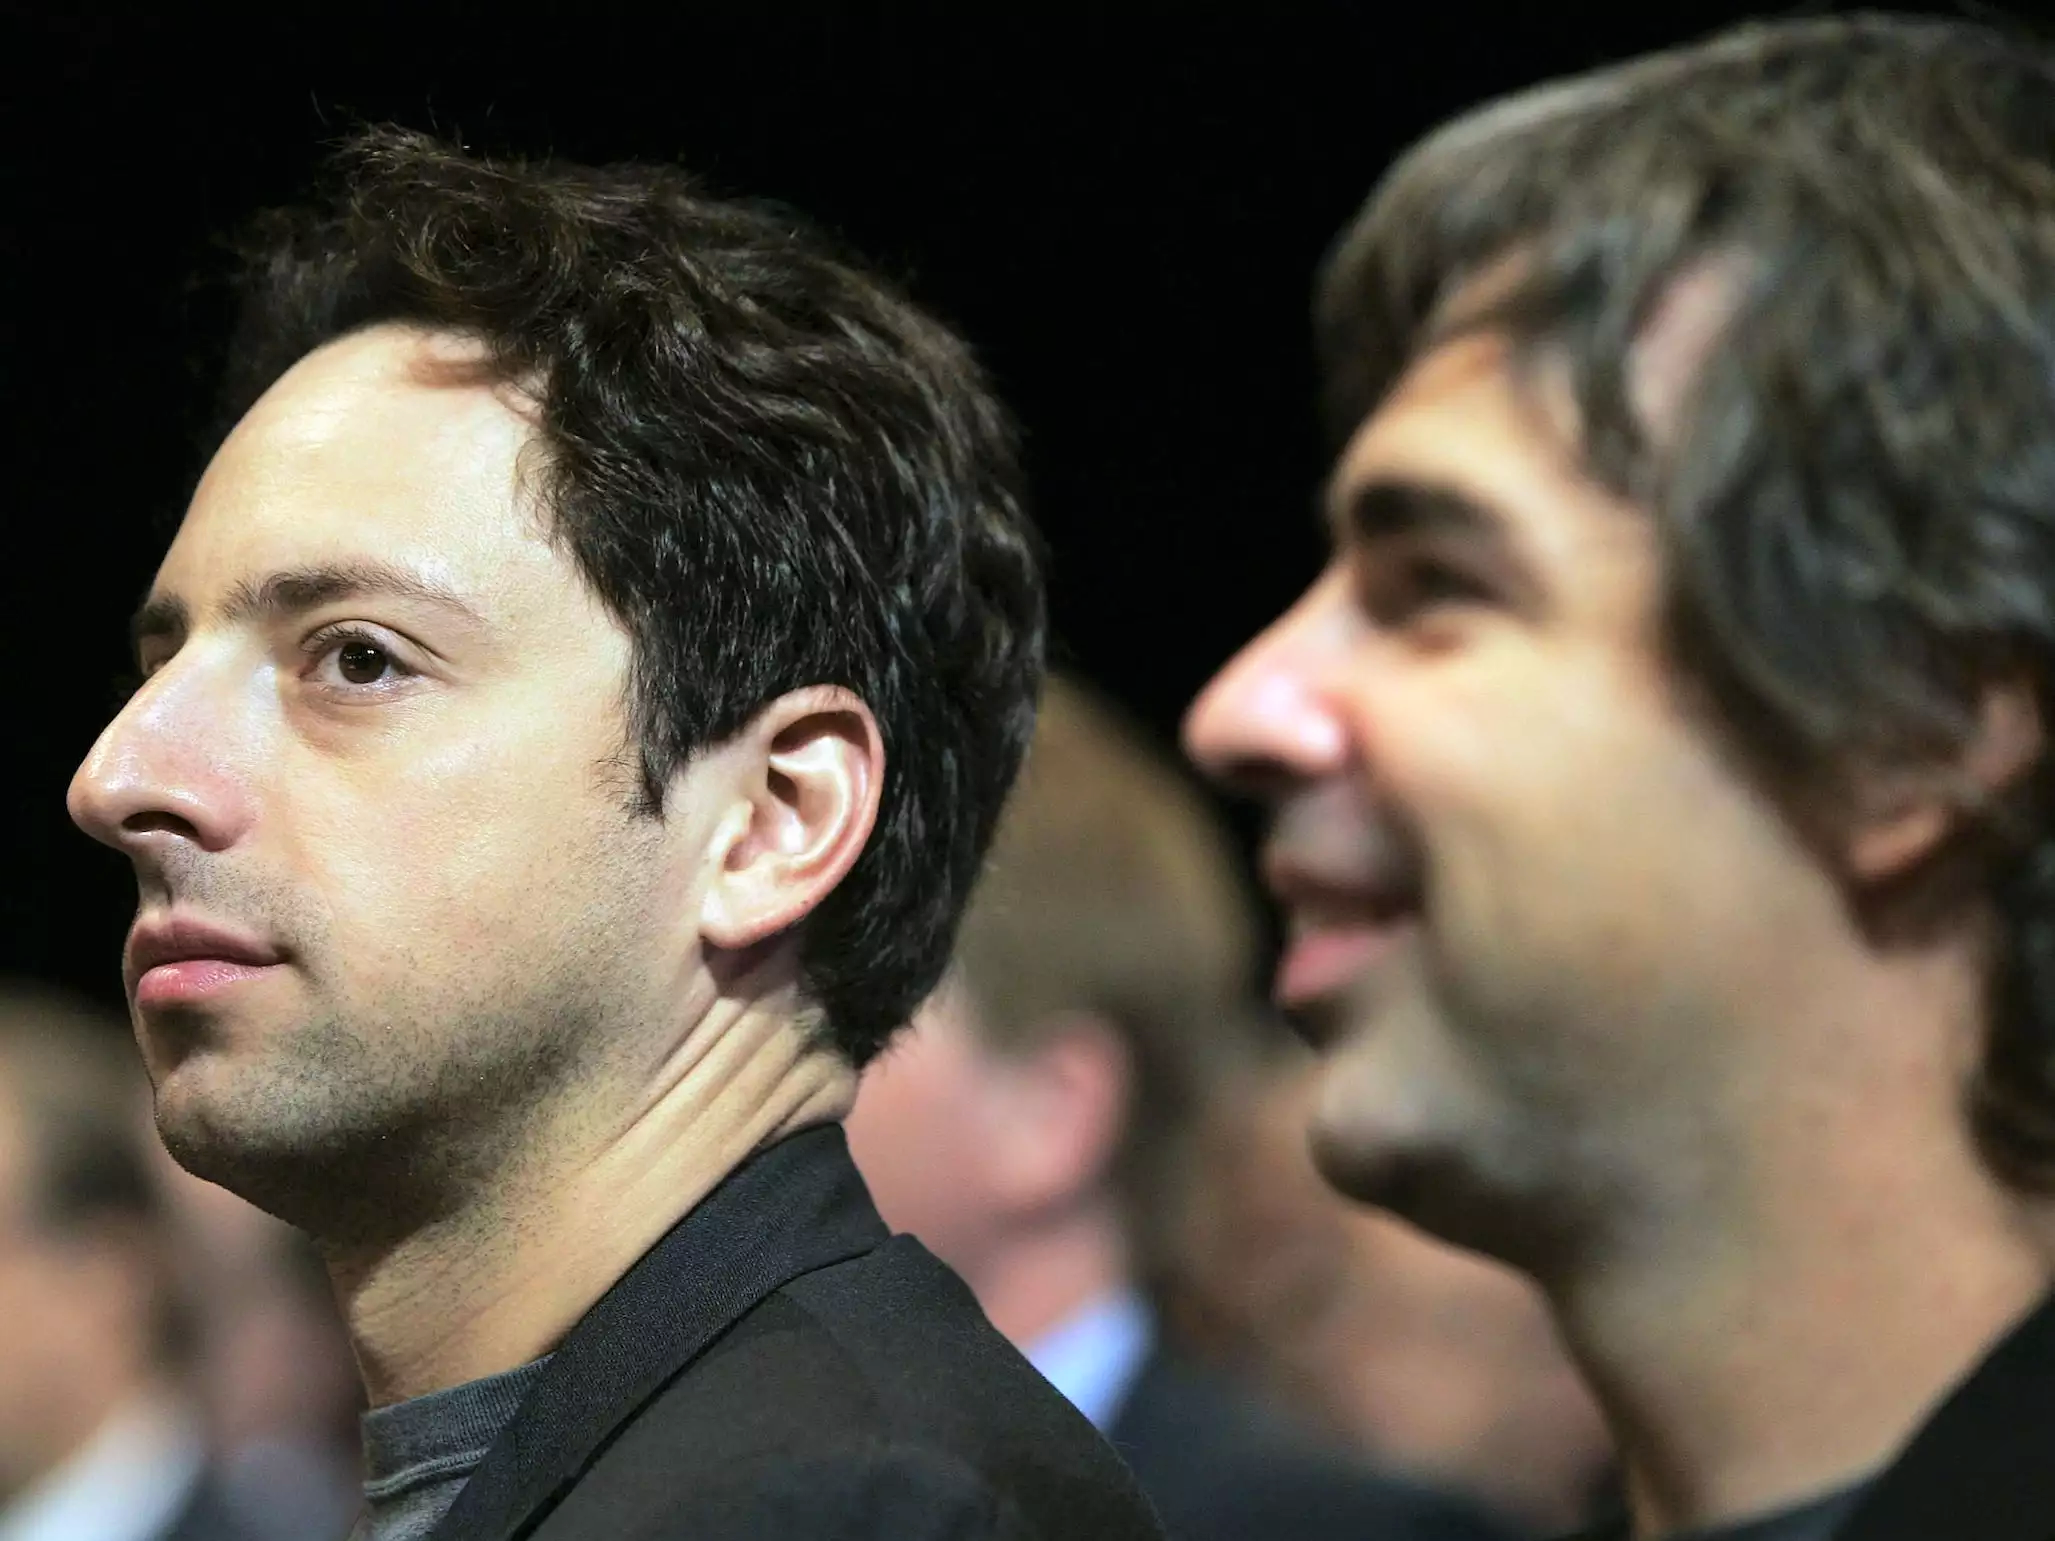 Google founders Larry Page and Sergey Brin are now worth more than 100 billion making them 2 of only 8 centimillionaires in the world